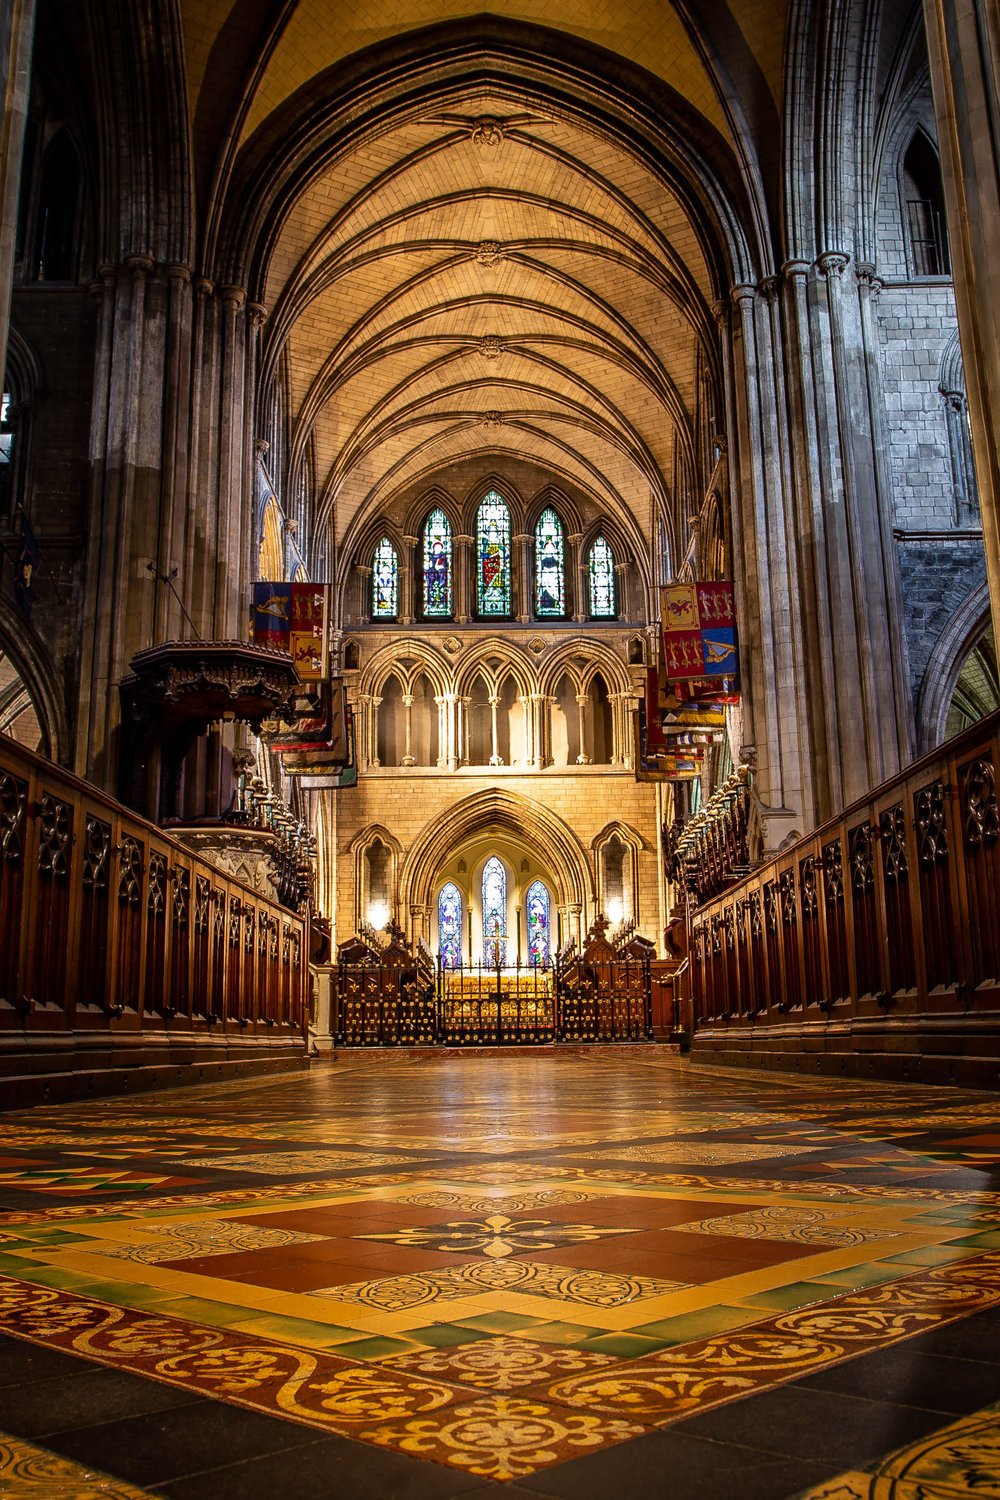 Pictured: St. Patrick's Cathedral, Dublin; Photo Credit: Cathy Baitson.